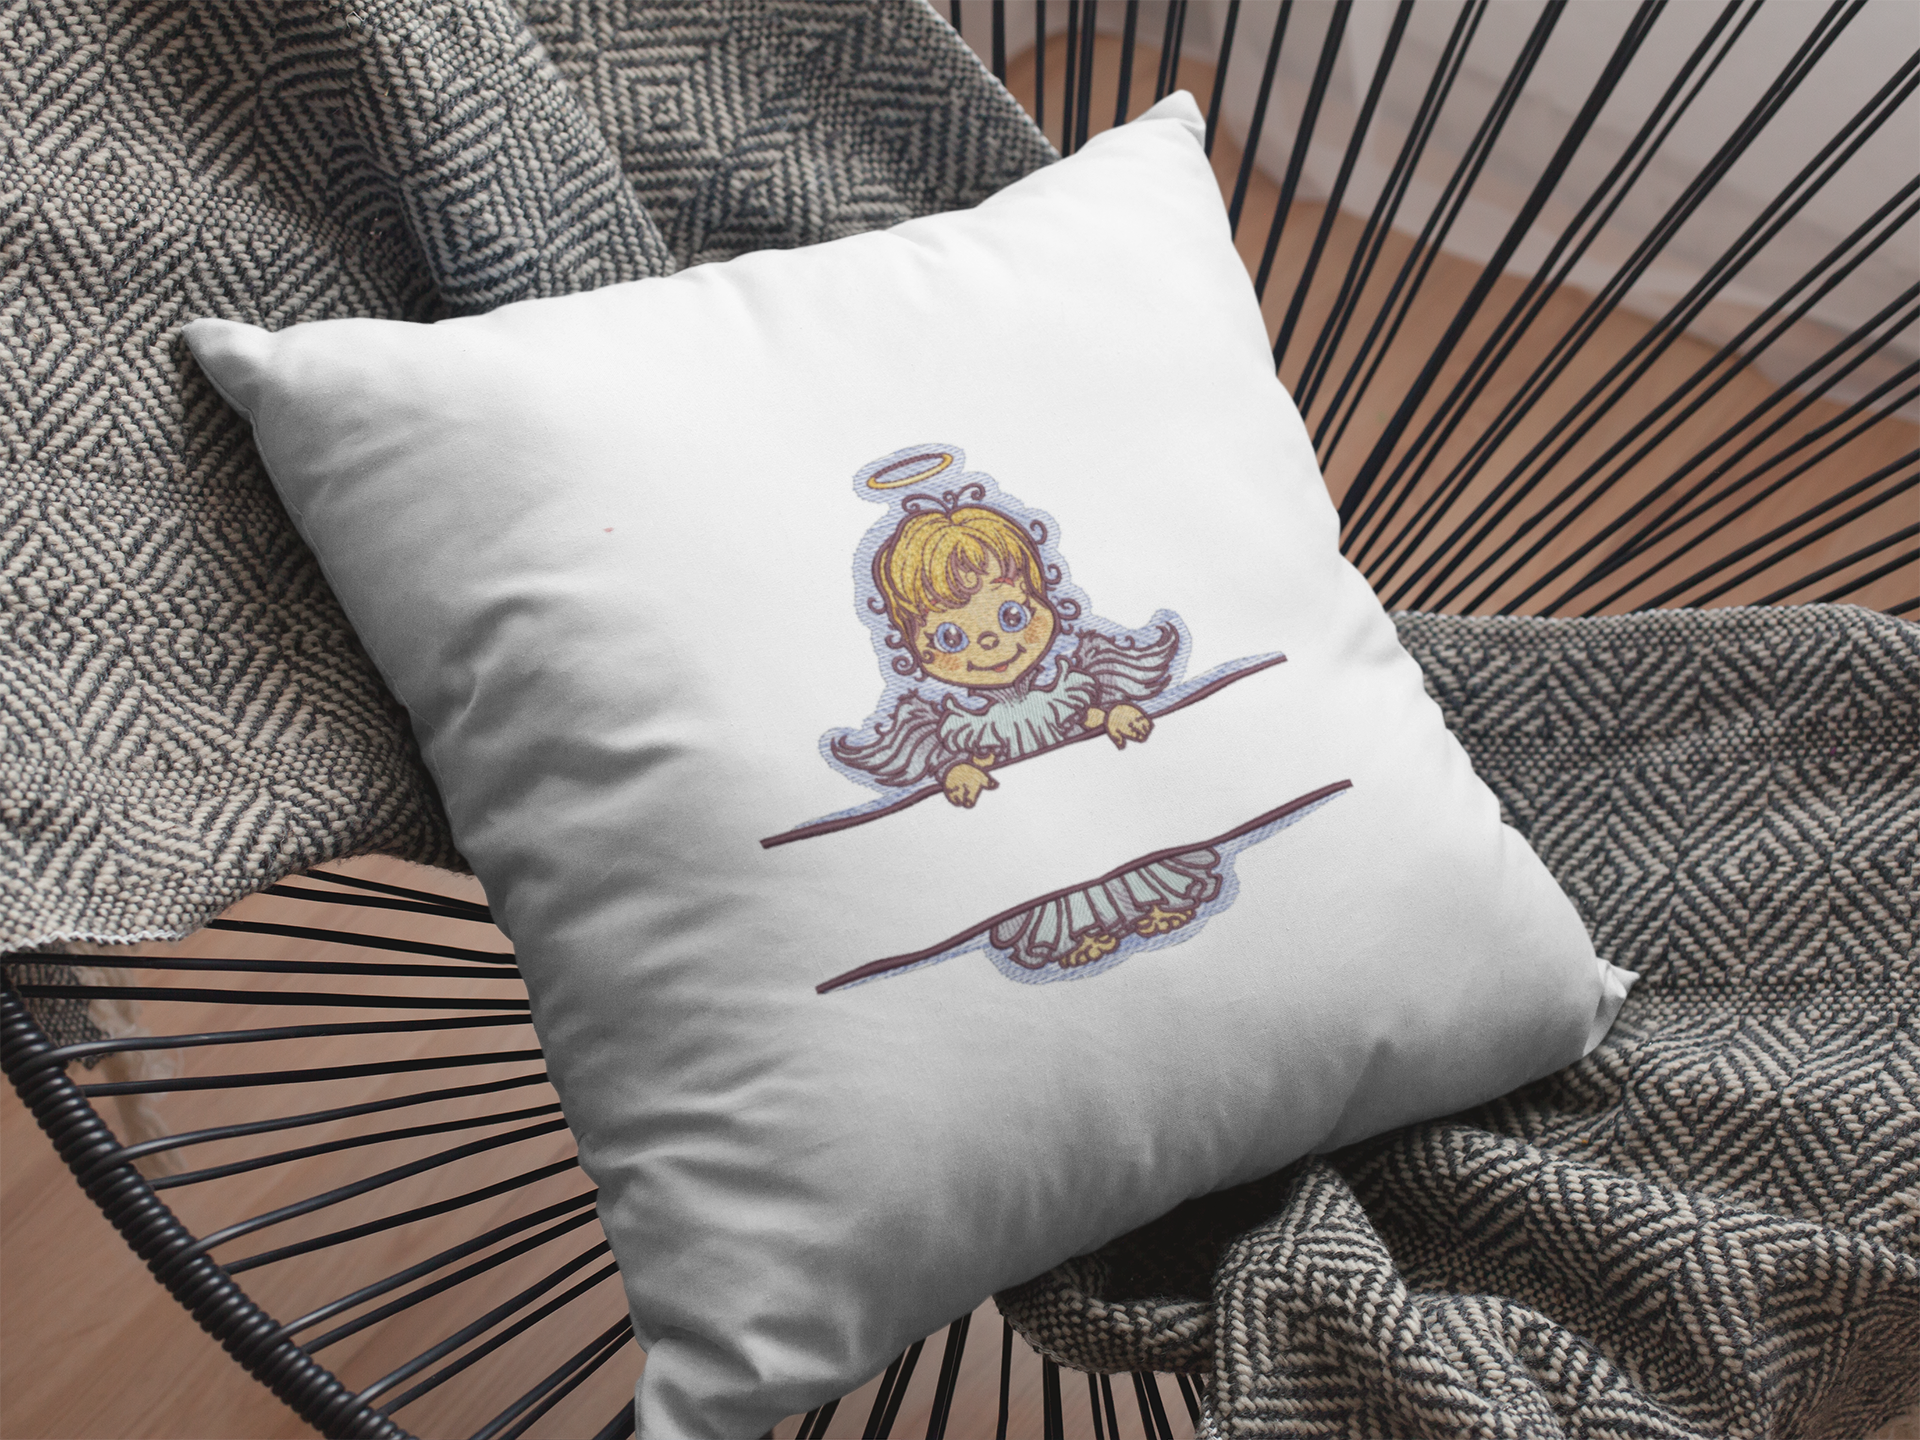 Embroidered pillow with Angel design